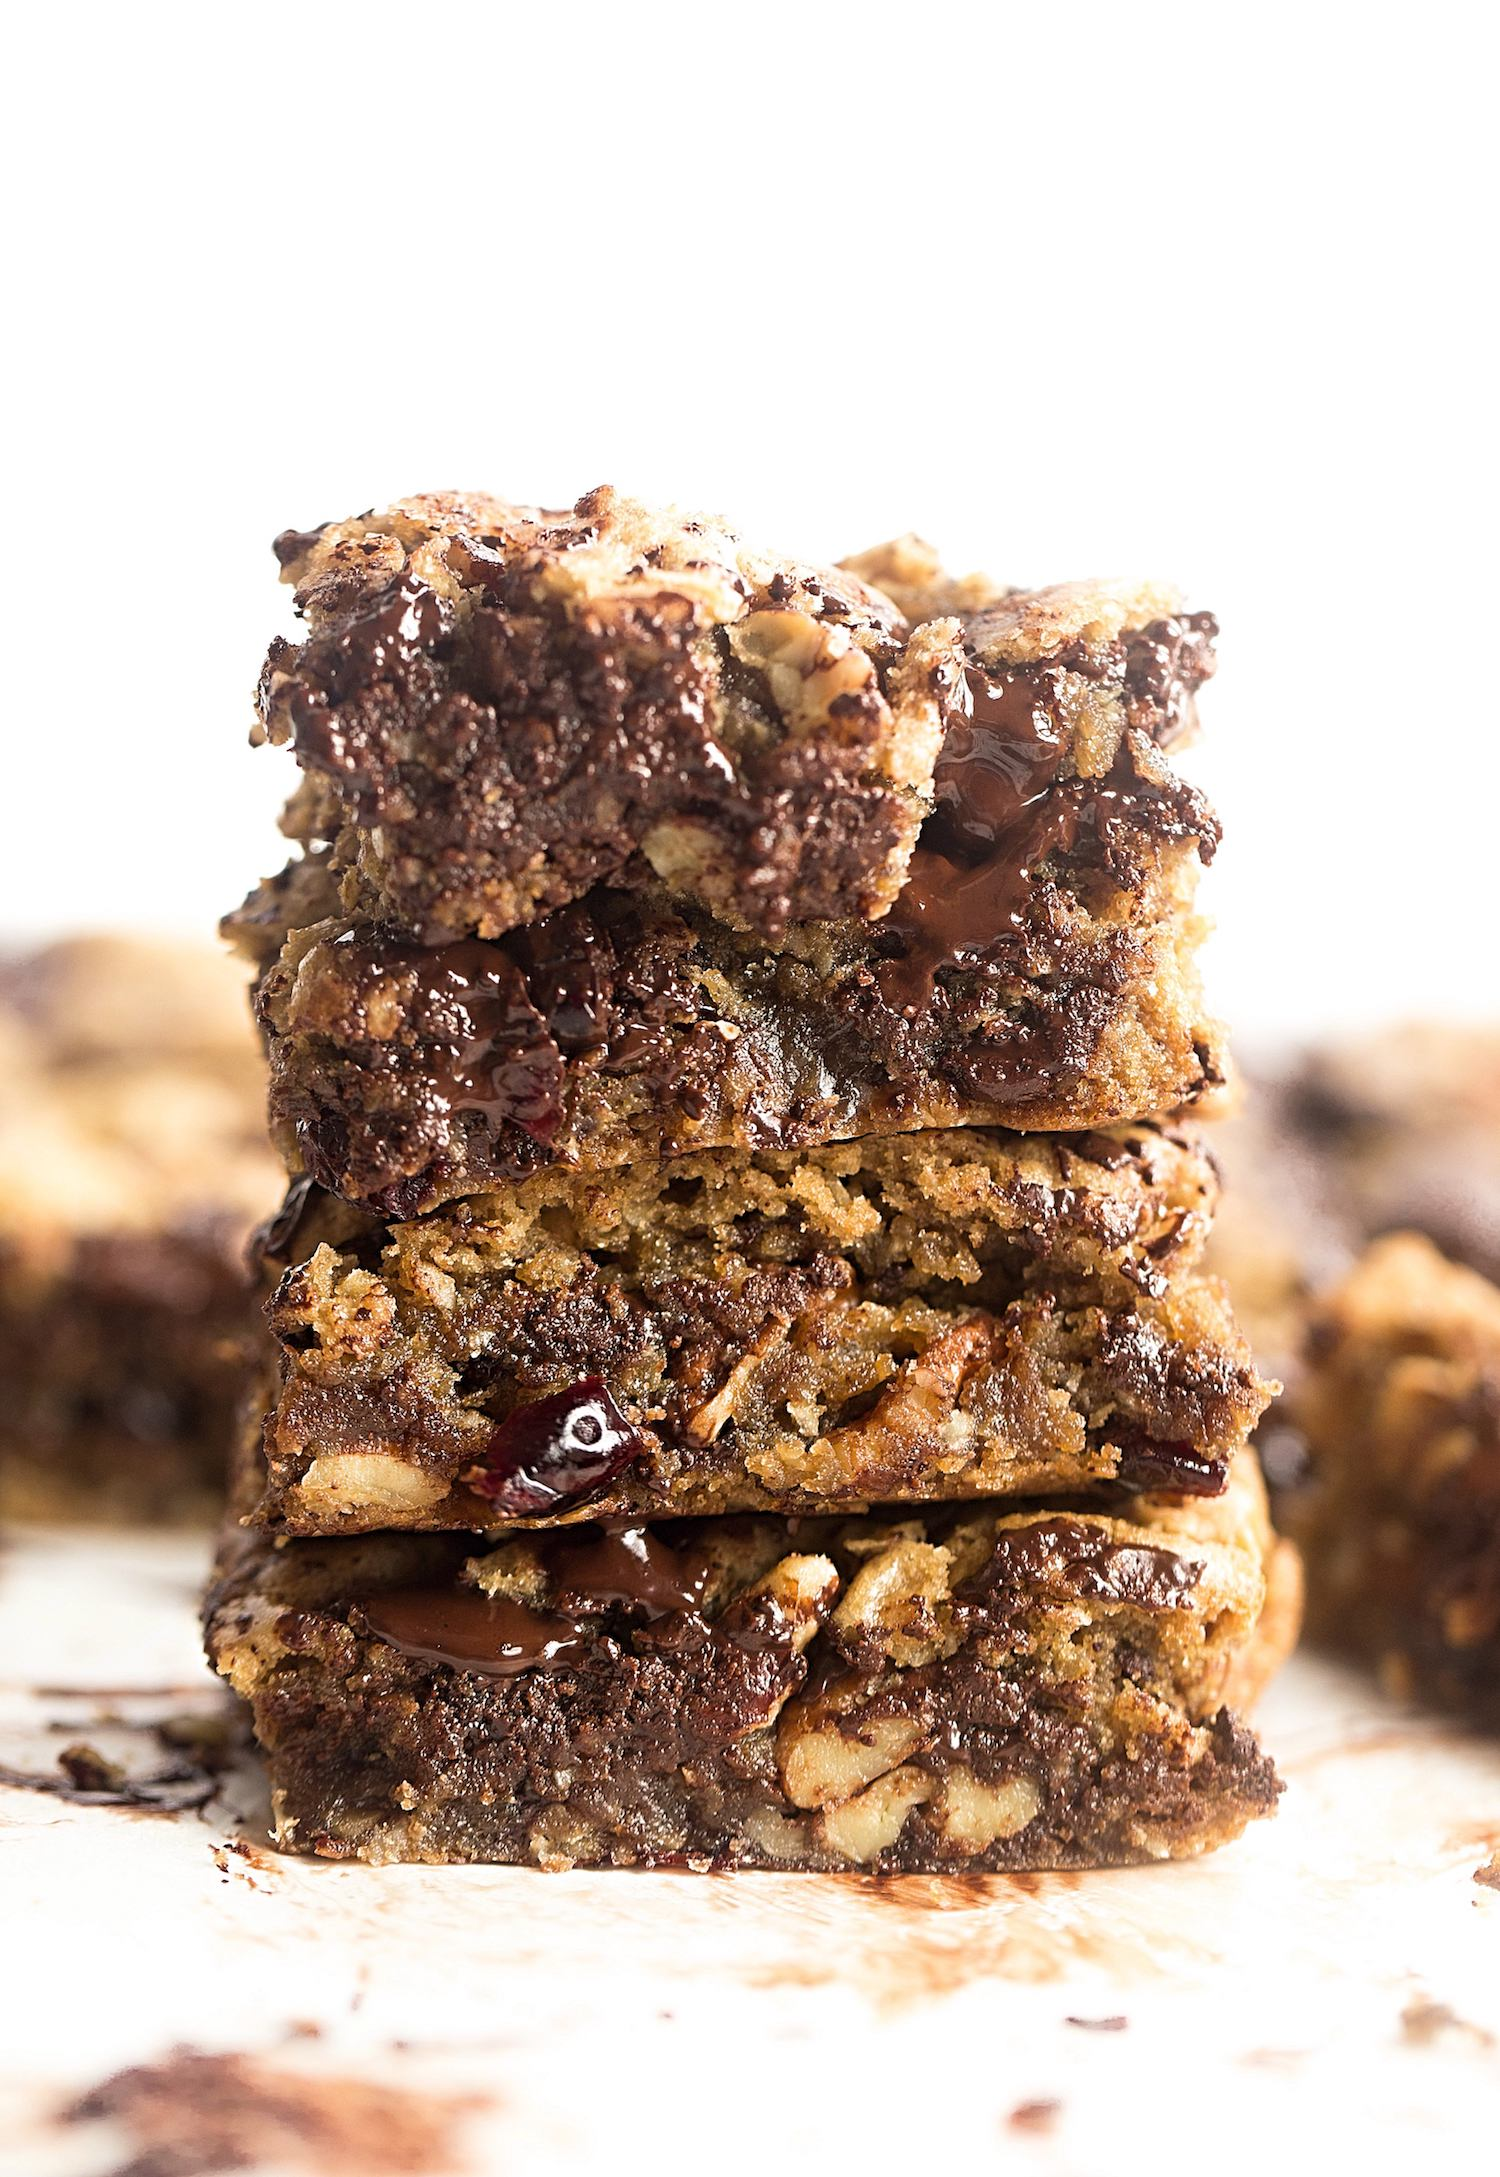 Soft and Gooey No-Butter Everything Bars: rich, one-bowl, cookie dough-like bars packed with chocolate chunks, oats, dried fruit and nuts. | TrufflesandTrends.com